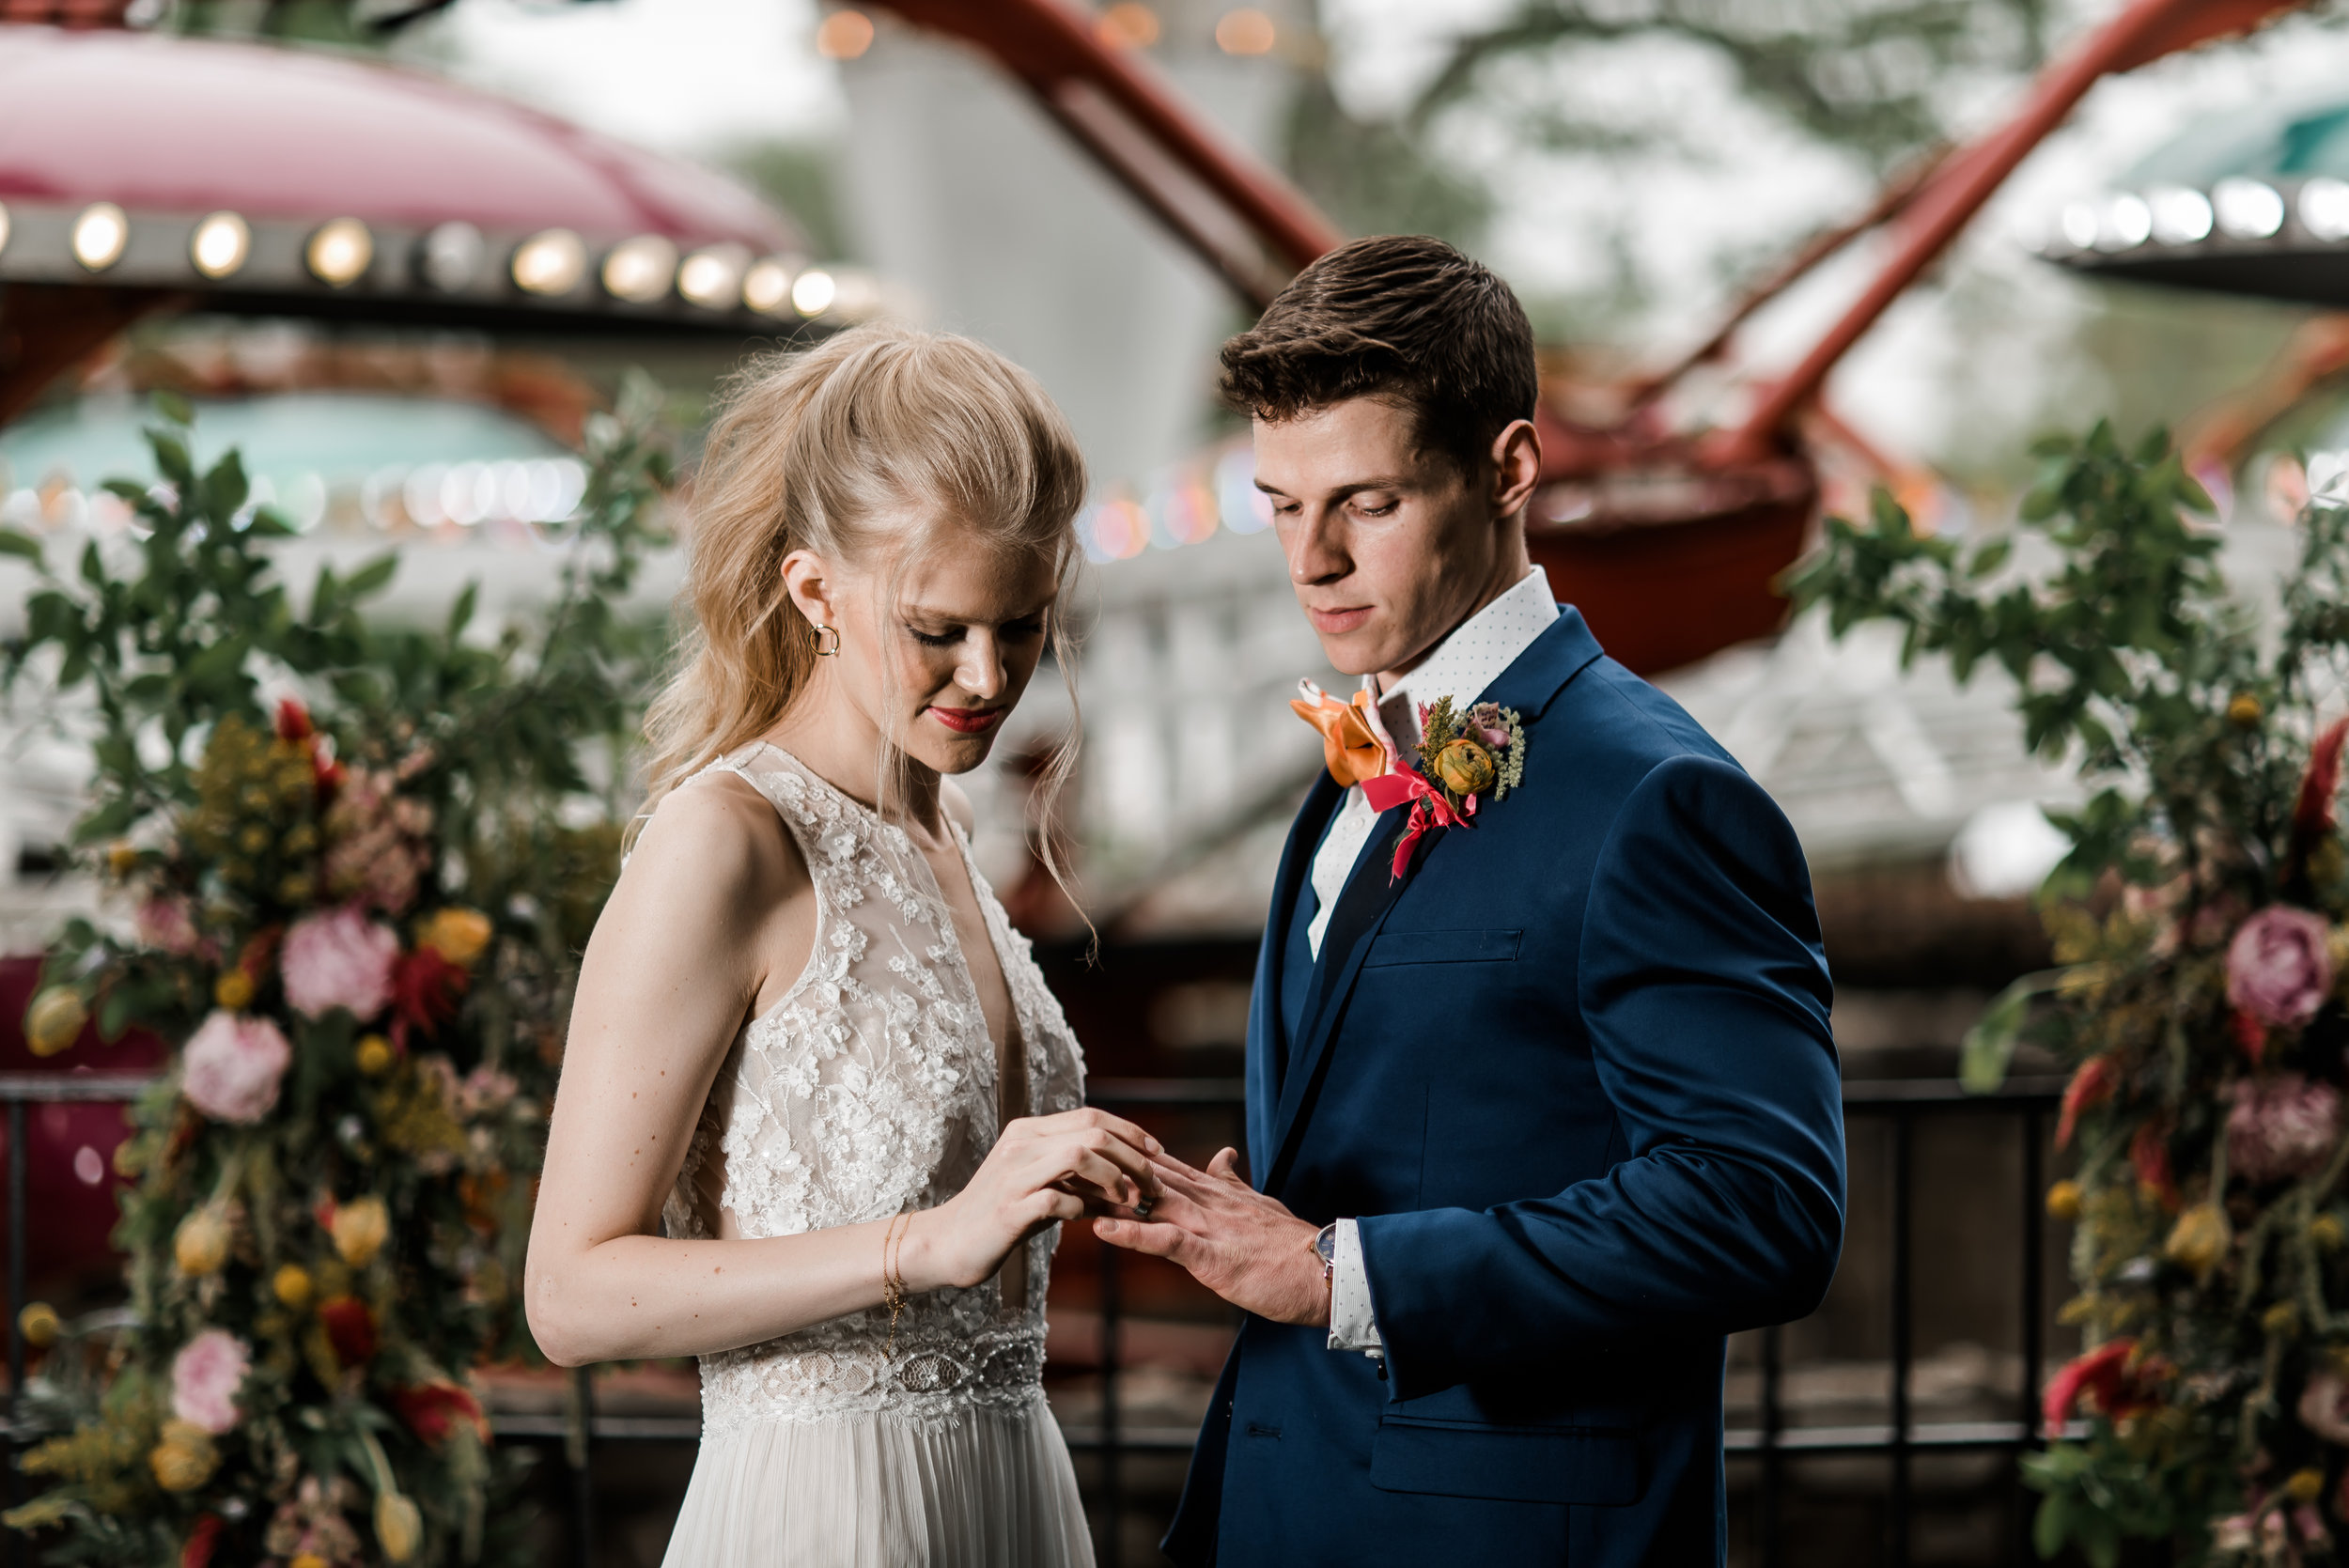 Kennywood Wedding-93-1.jpg